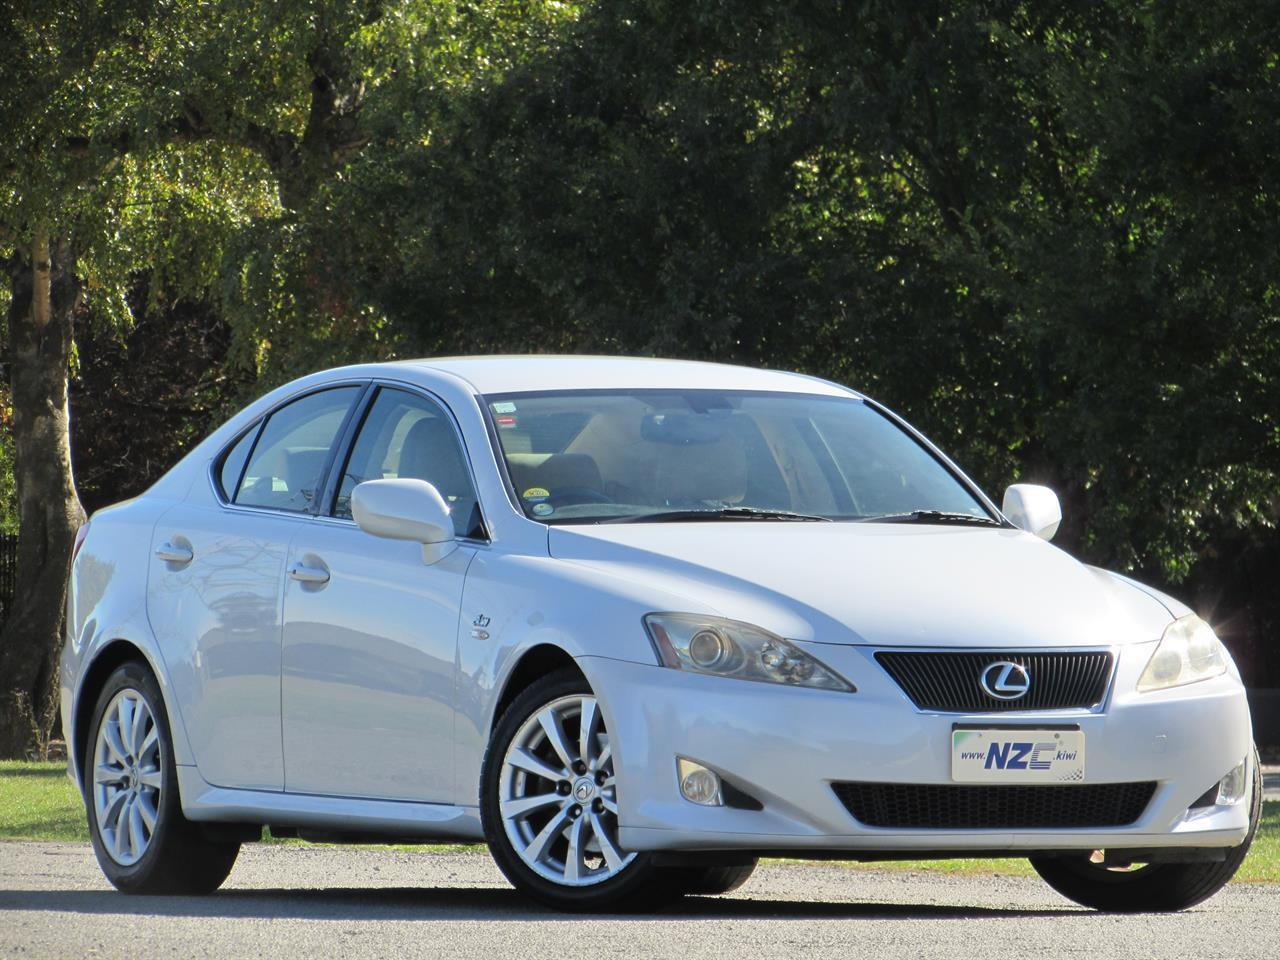 image-0, 2007 Lexus IS 250 at Christchurch